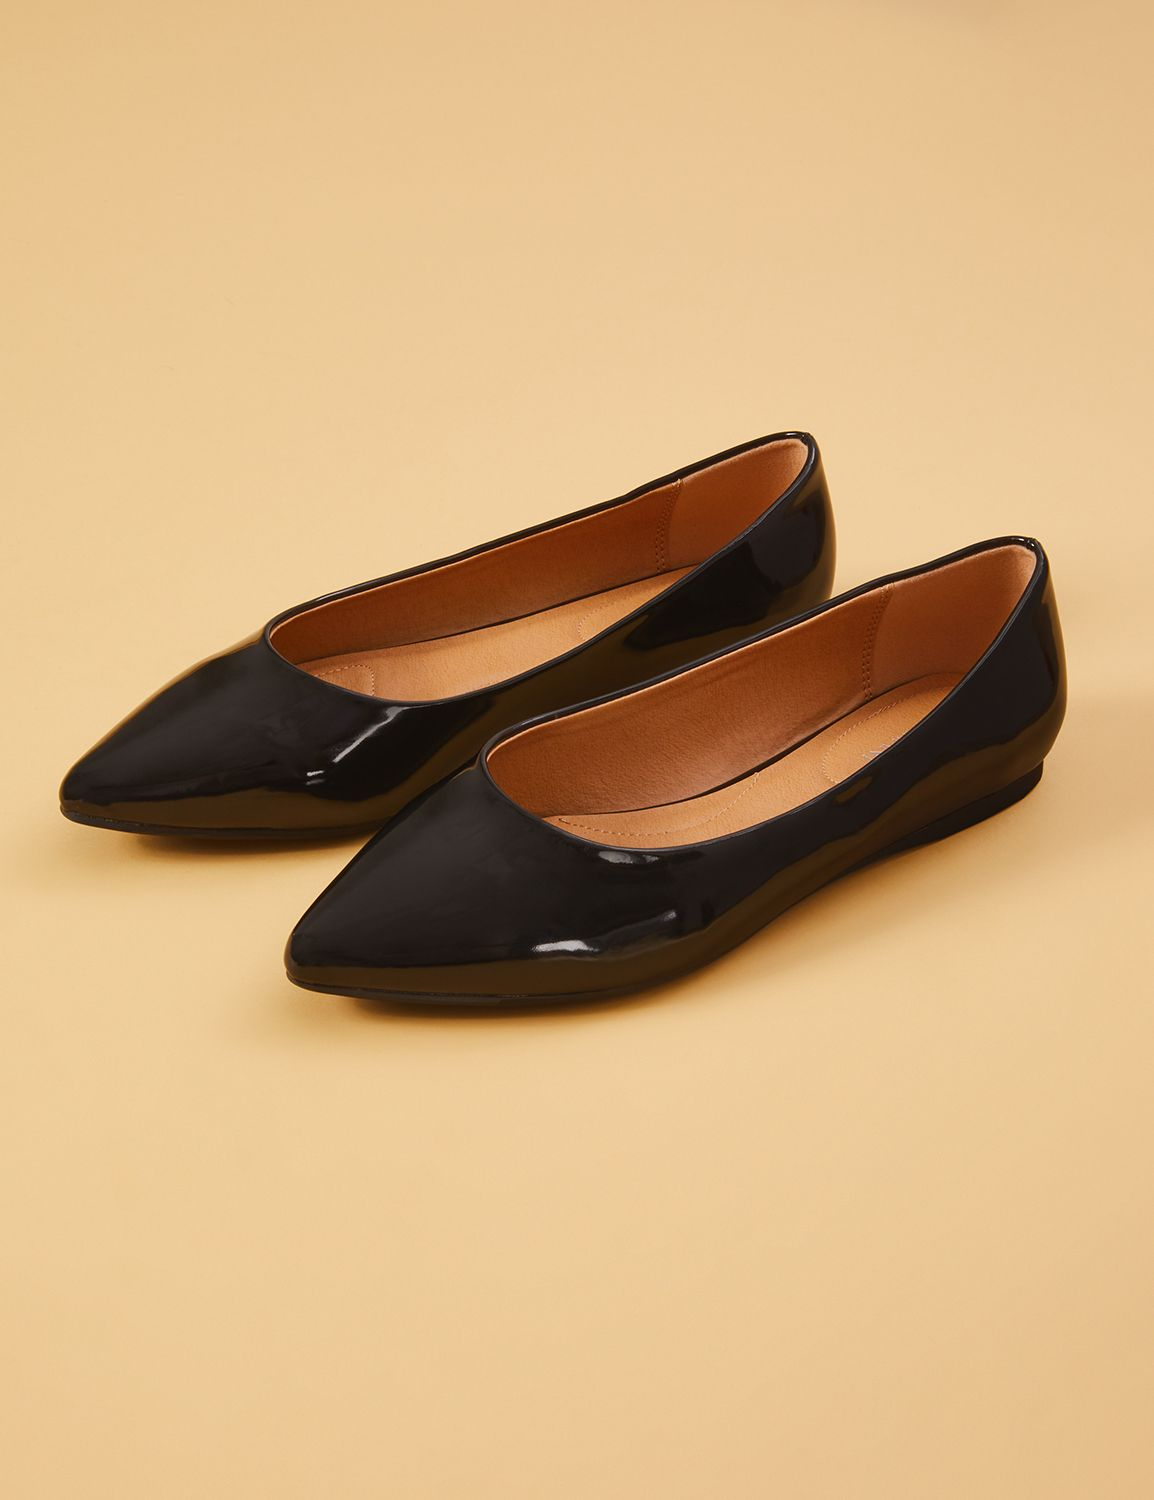 Retro Vintage Flats and Low Heel Shoes Lane Bryant Womens Faux Patent Leather Pointed-Toe Flat 12W Black $39.95 AT vintagedancer.com